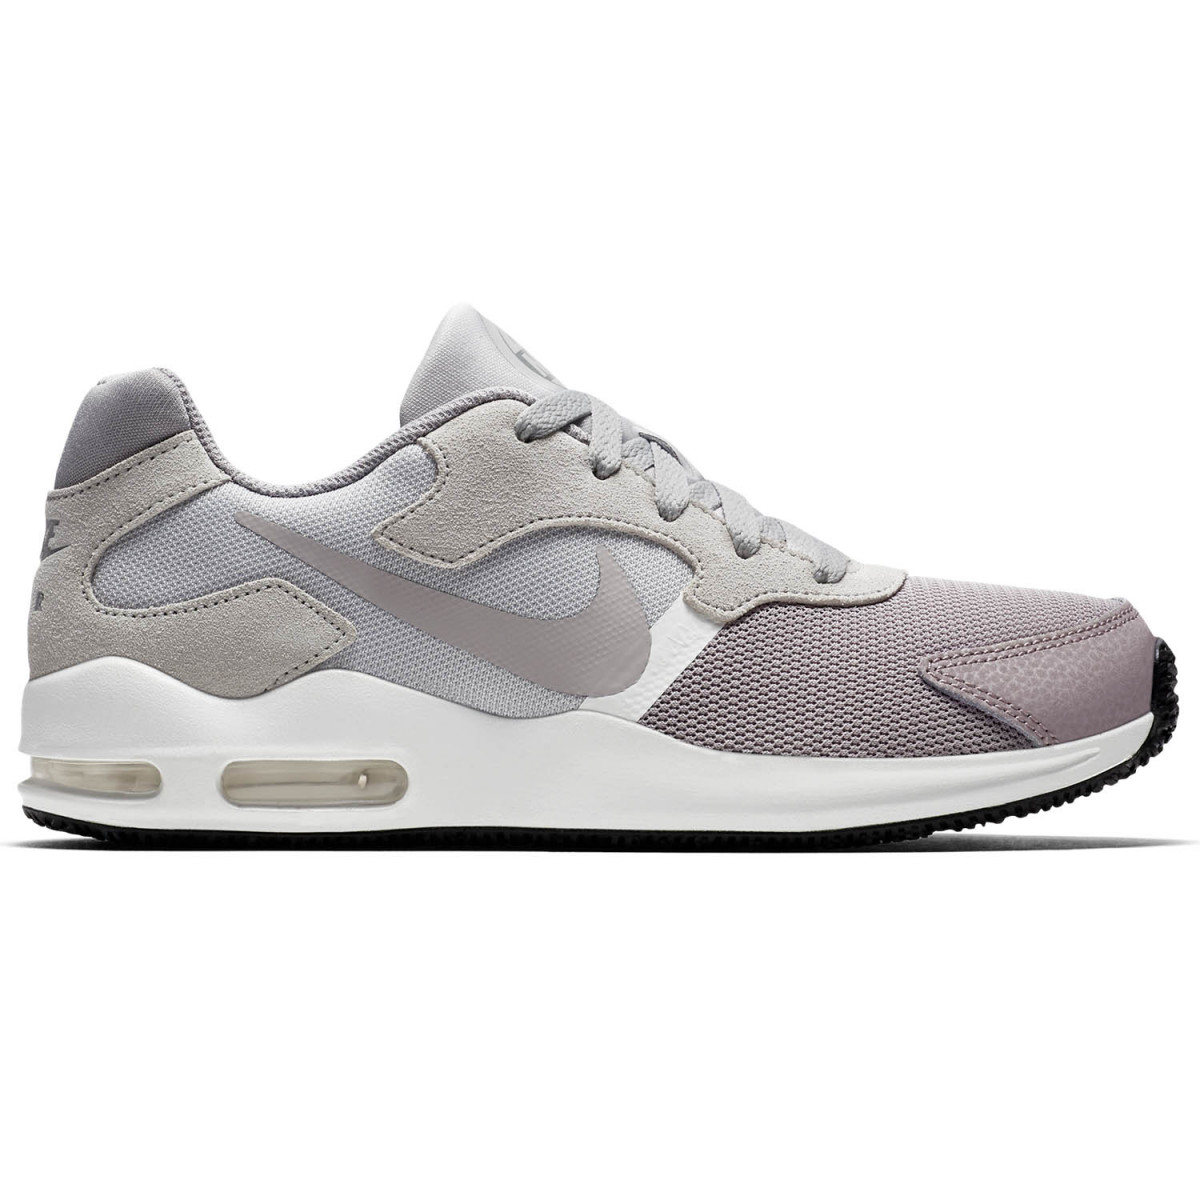 696f9a4d5b8e1 Zapatillas Nike Air Max Guile